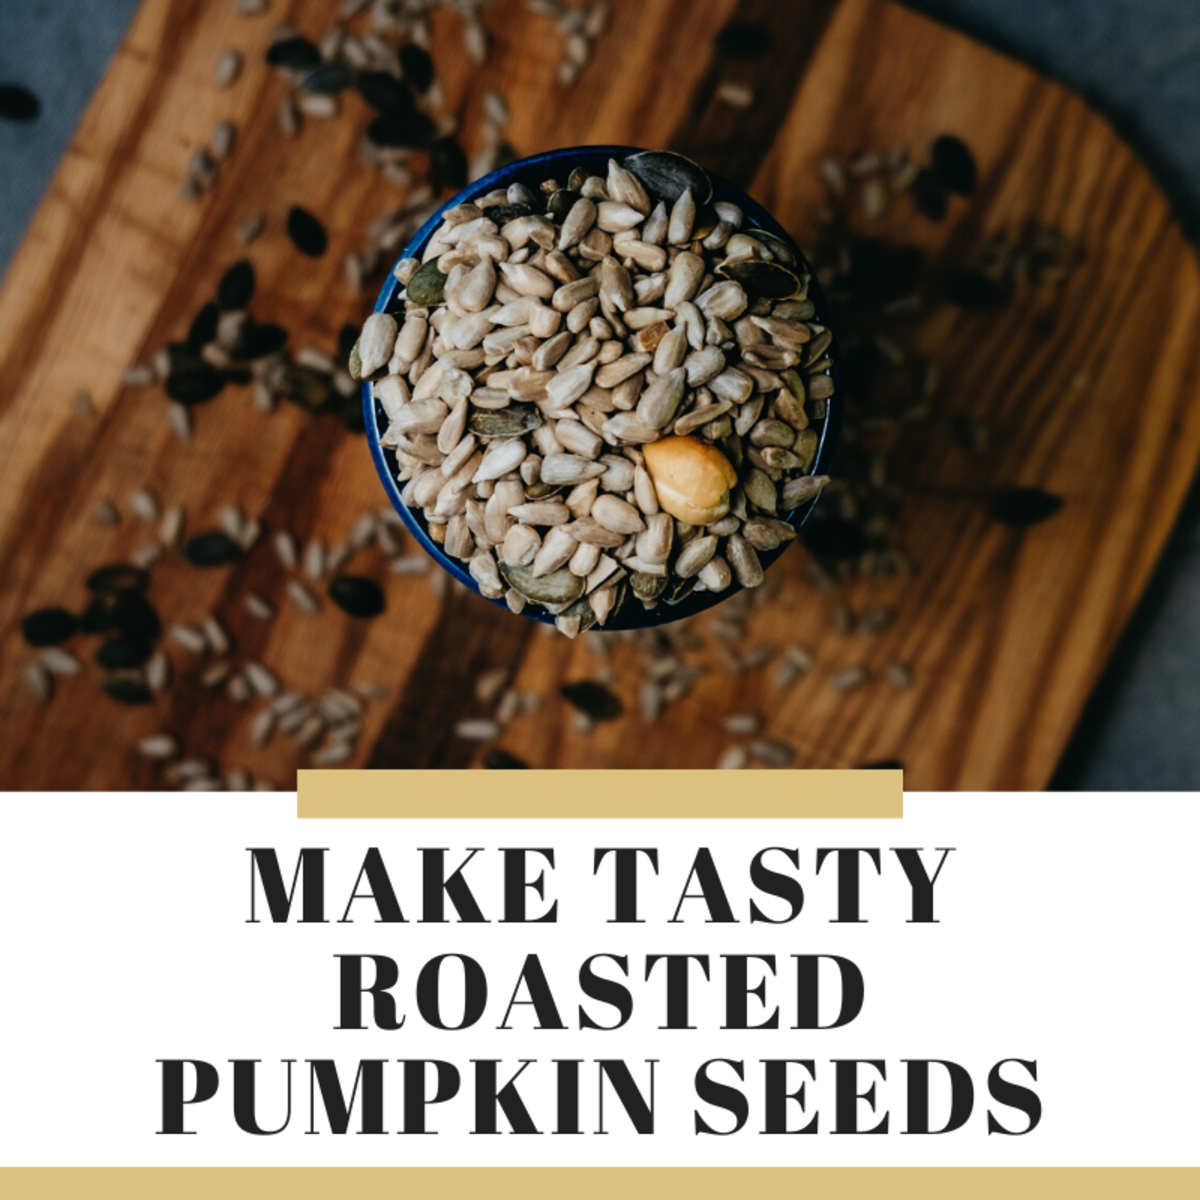 How to Make Tasty Roasted Pumpkin Seeds